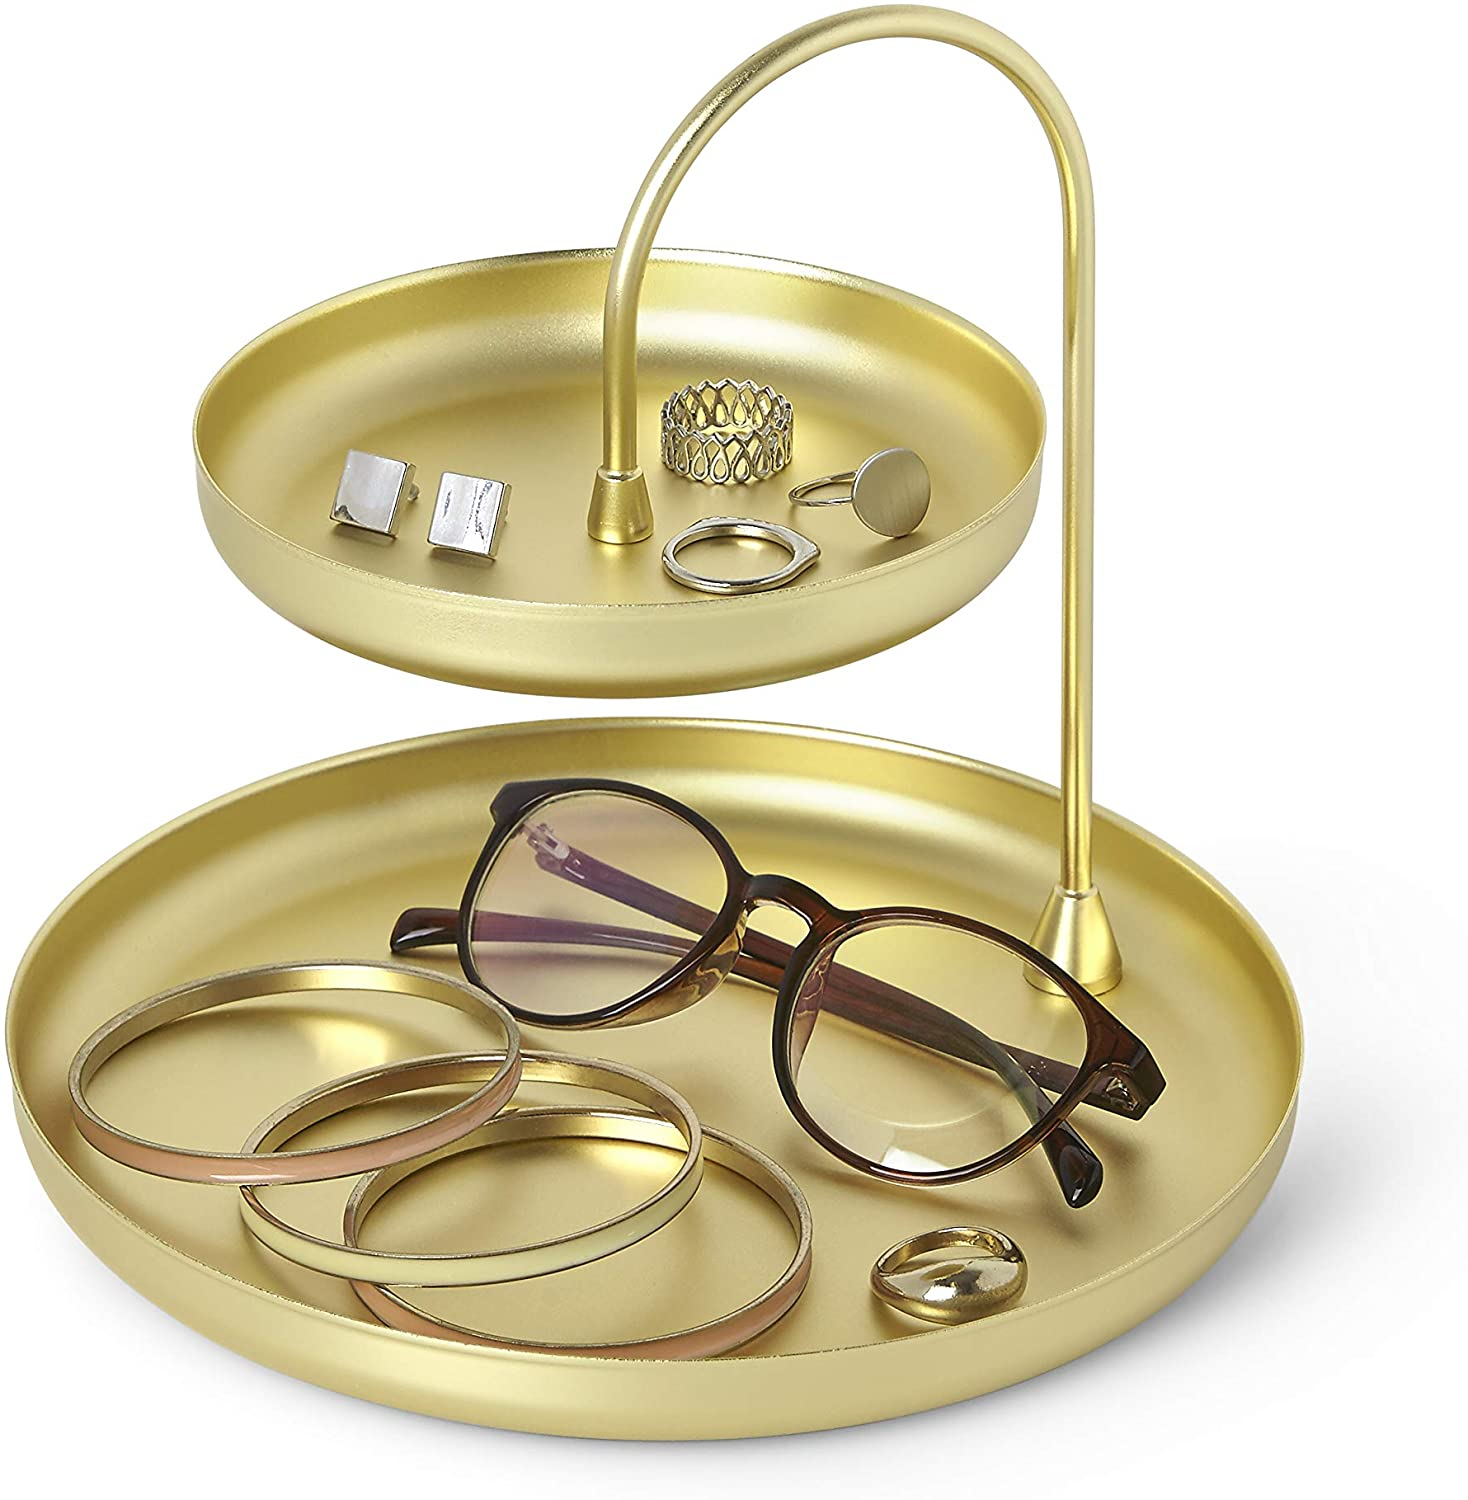 Umbra Poise Large Jewelry Tray, Double Jewelry Tray, Attractive Jewelry Storage You Can Leave Out, Two-Tiered Jewelry Tray, Matte Brass Finish : Clothing, Shoes & Jewelry